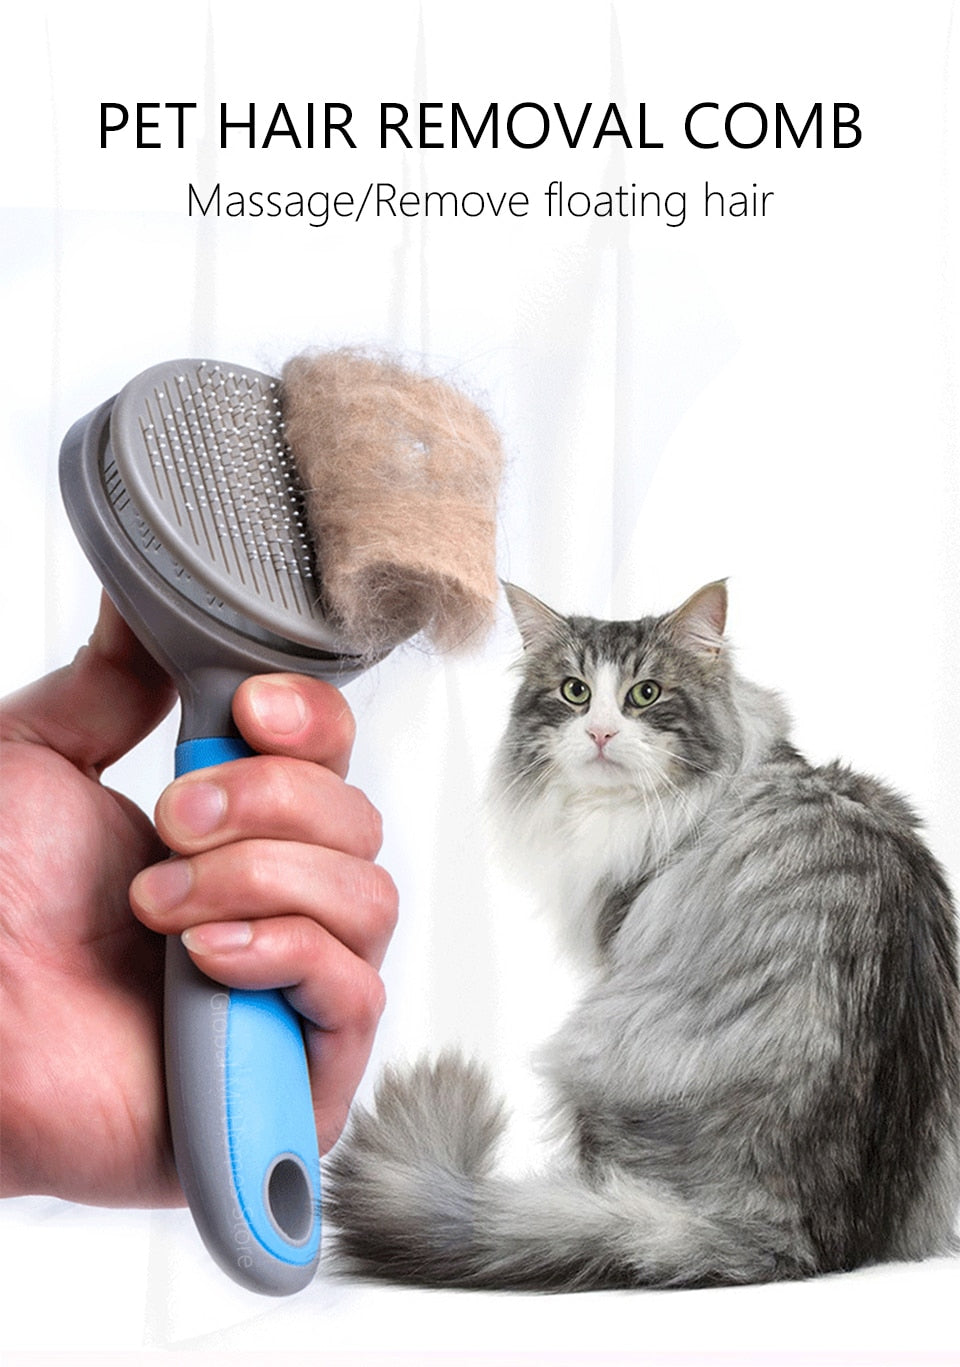 Tflag Pet Comb Xiomi Pet Cat Hair Removal Brush Comb Pet Grooming Tools Hair Shedding Trimmer Comb for Cats Xiomi Mijia 47 - Hillmarten